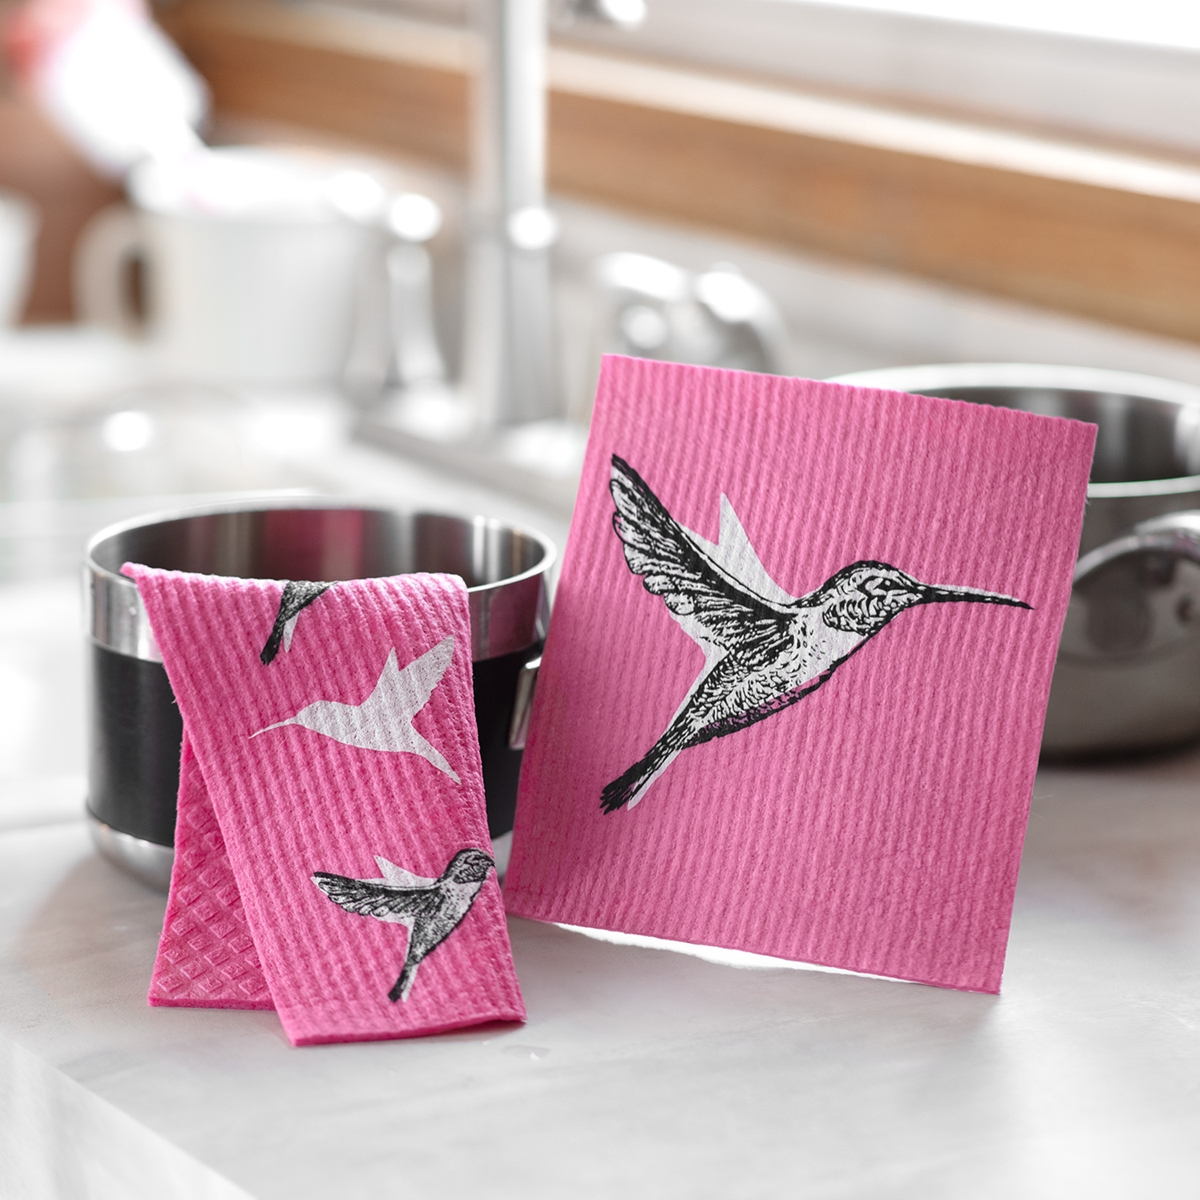 Hummingbird Swedish Dish Cloth Set